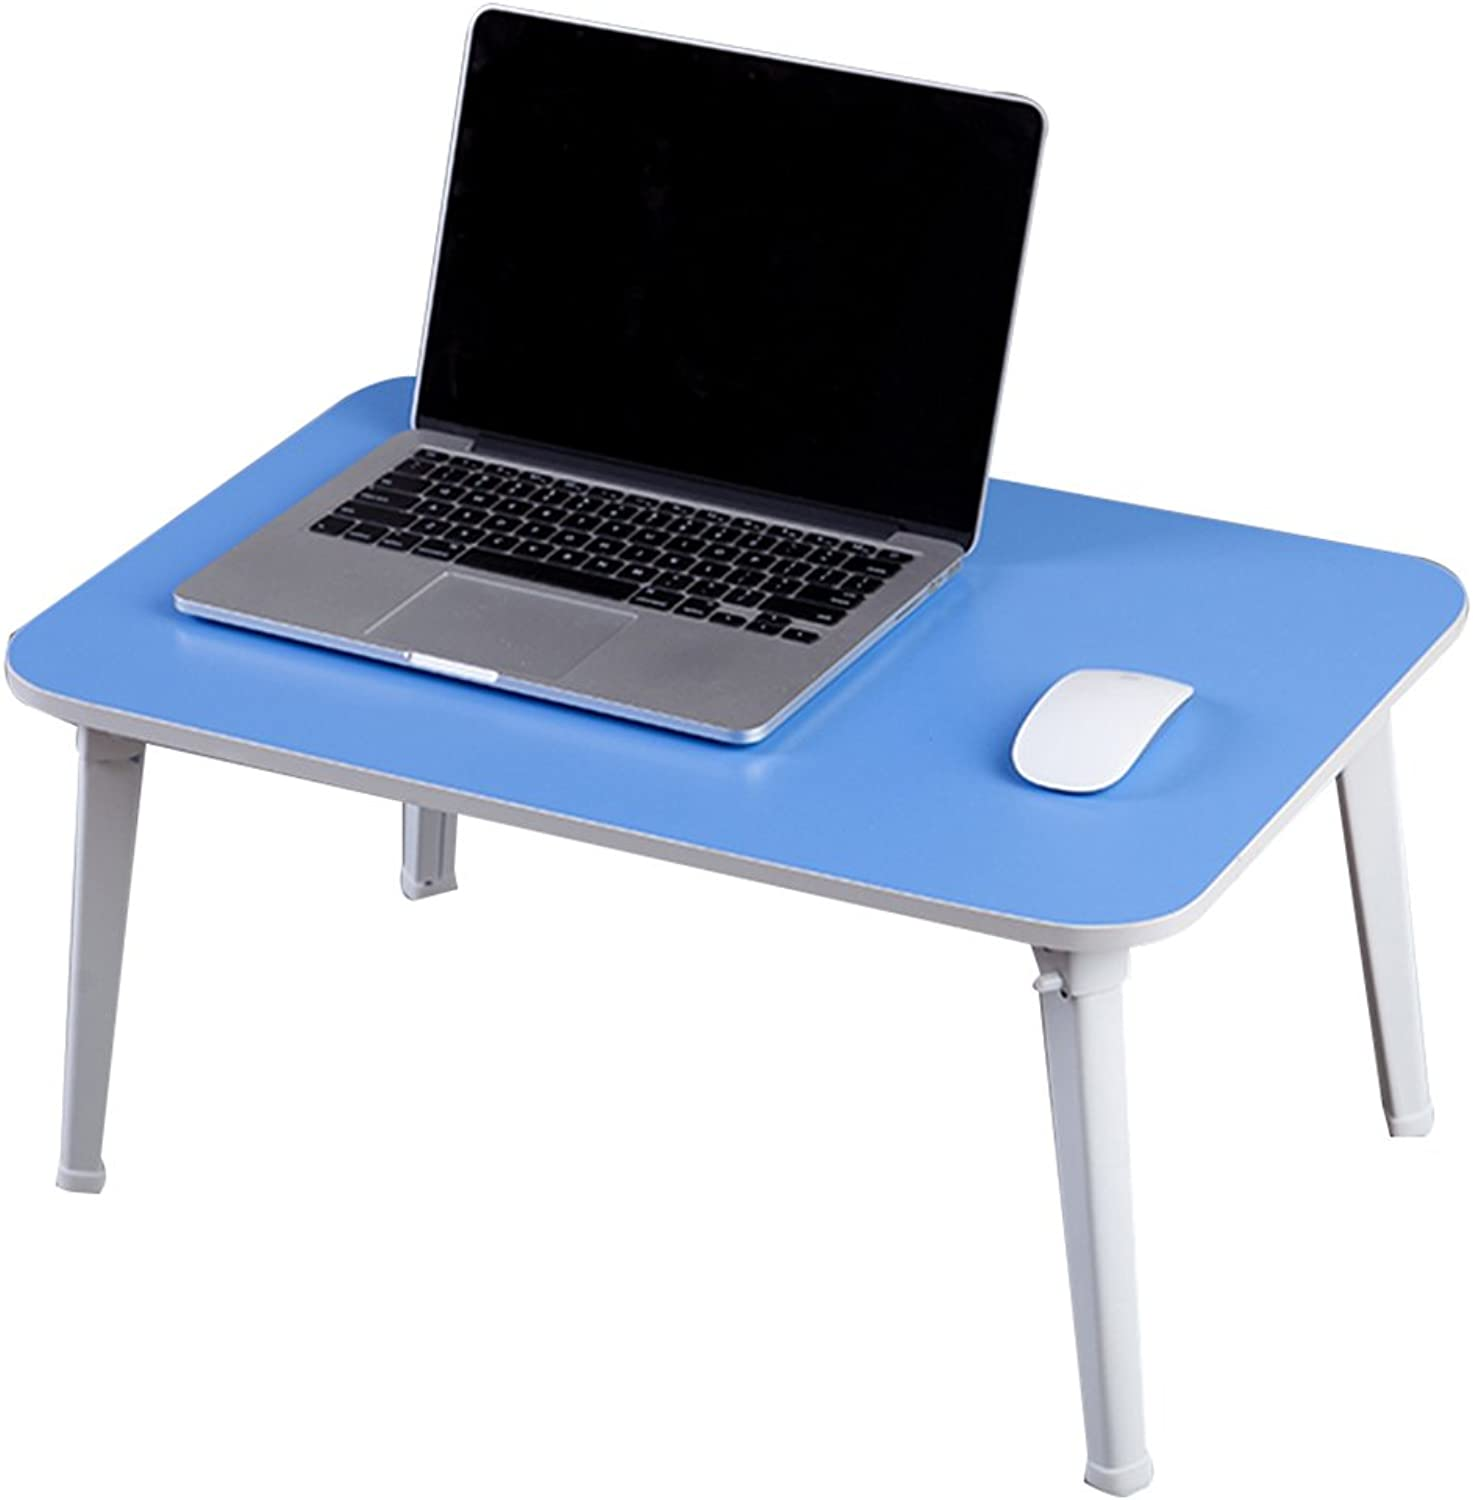 HAIPENG Computer Desk Notebook Lazy Folding Tables Small Foldable Bedside Table Wooden Dormitory (color   bluee, Size   60x40x29cm)